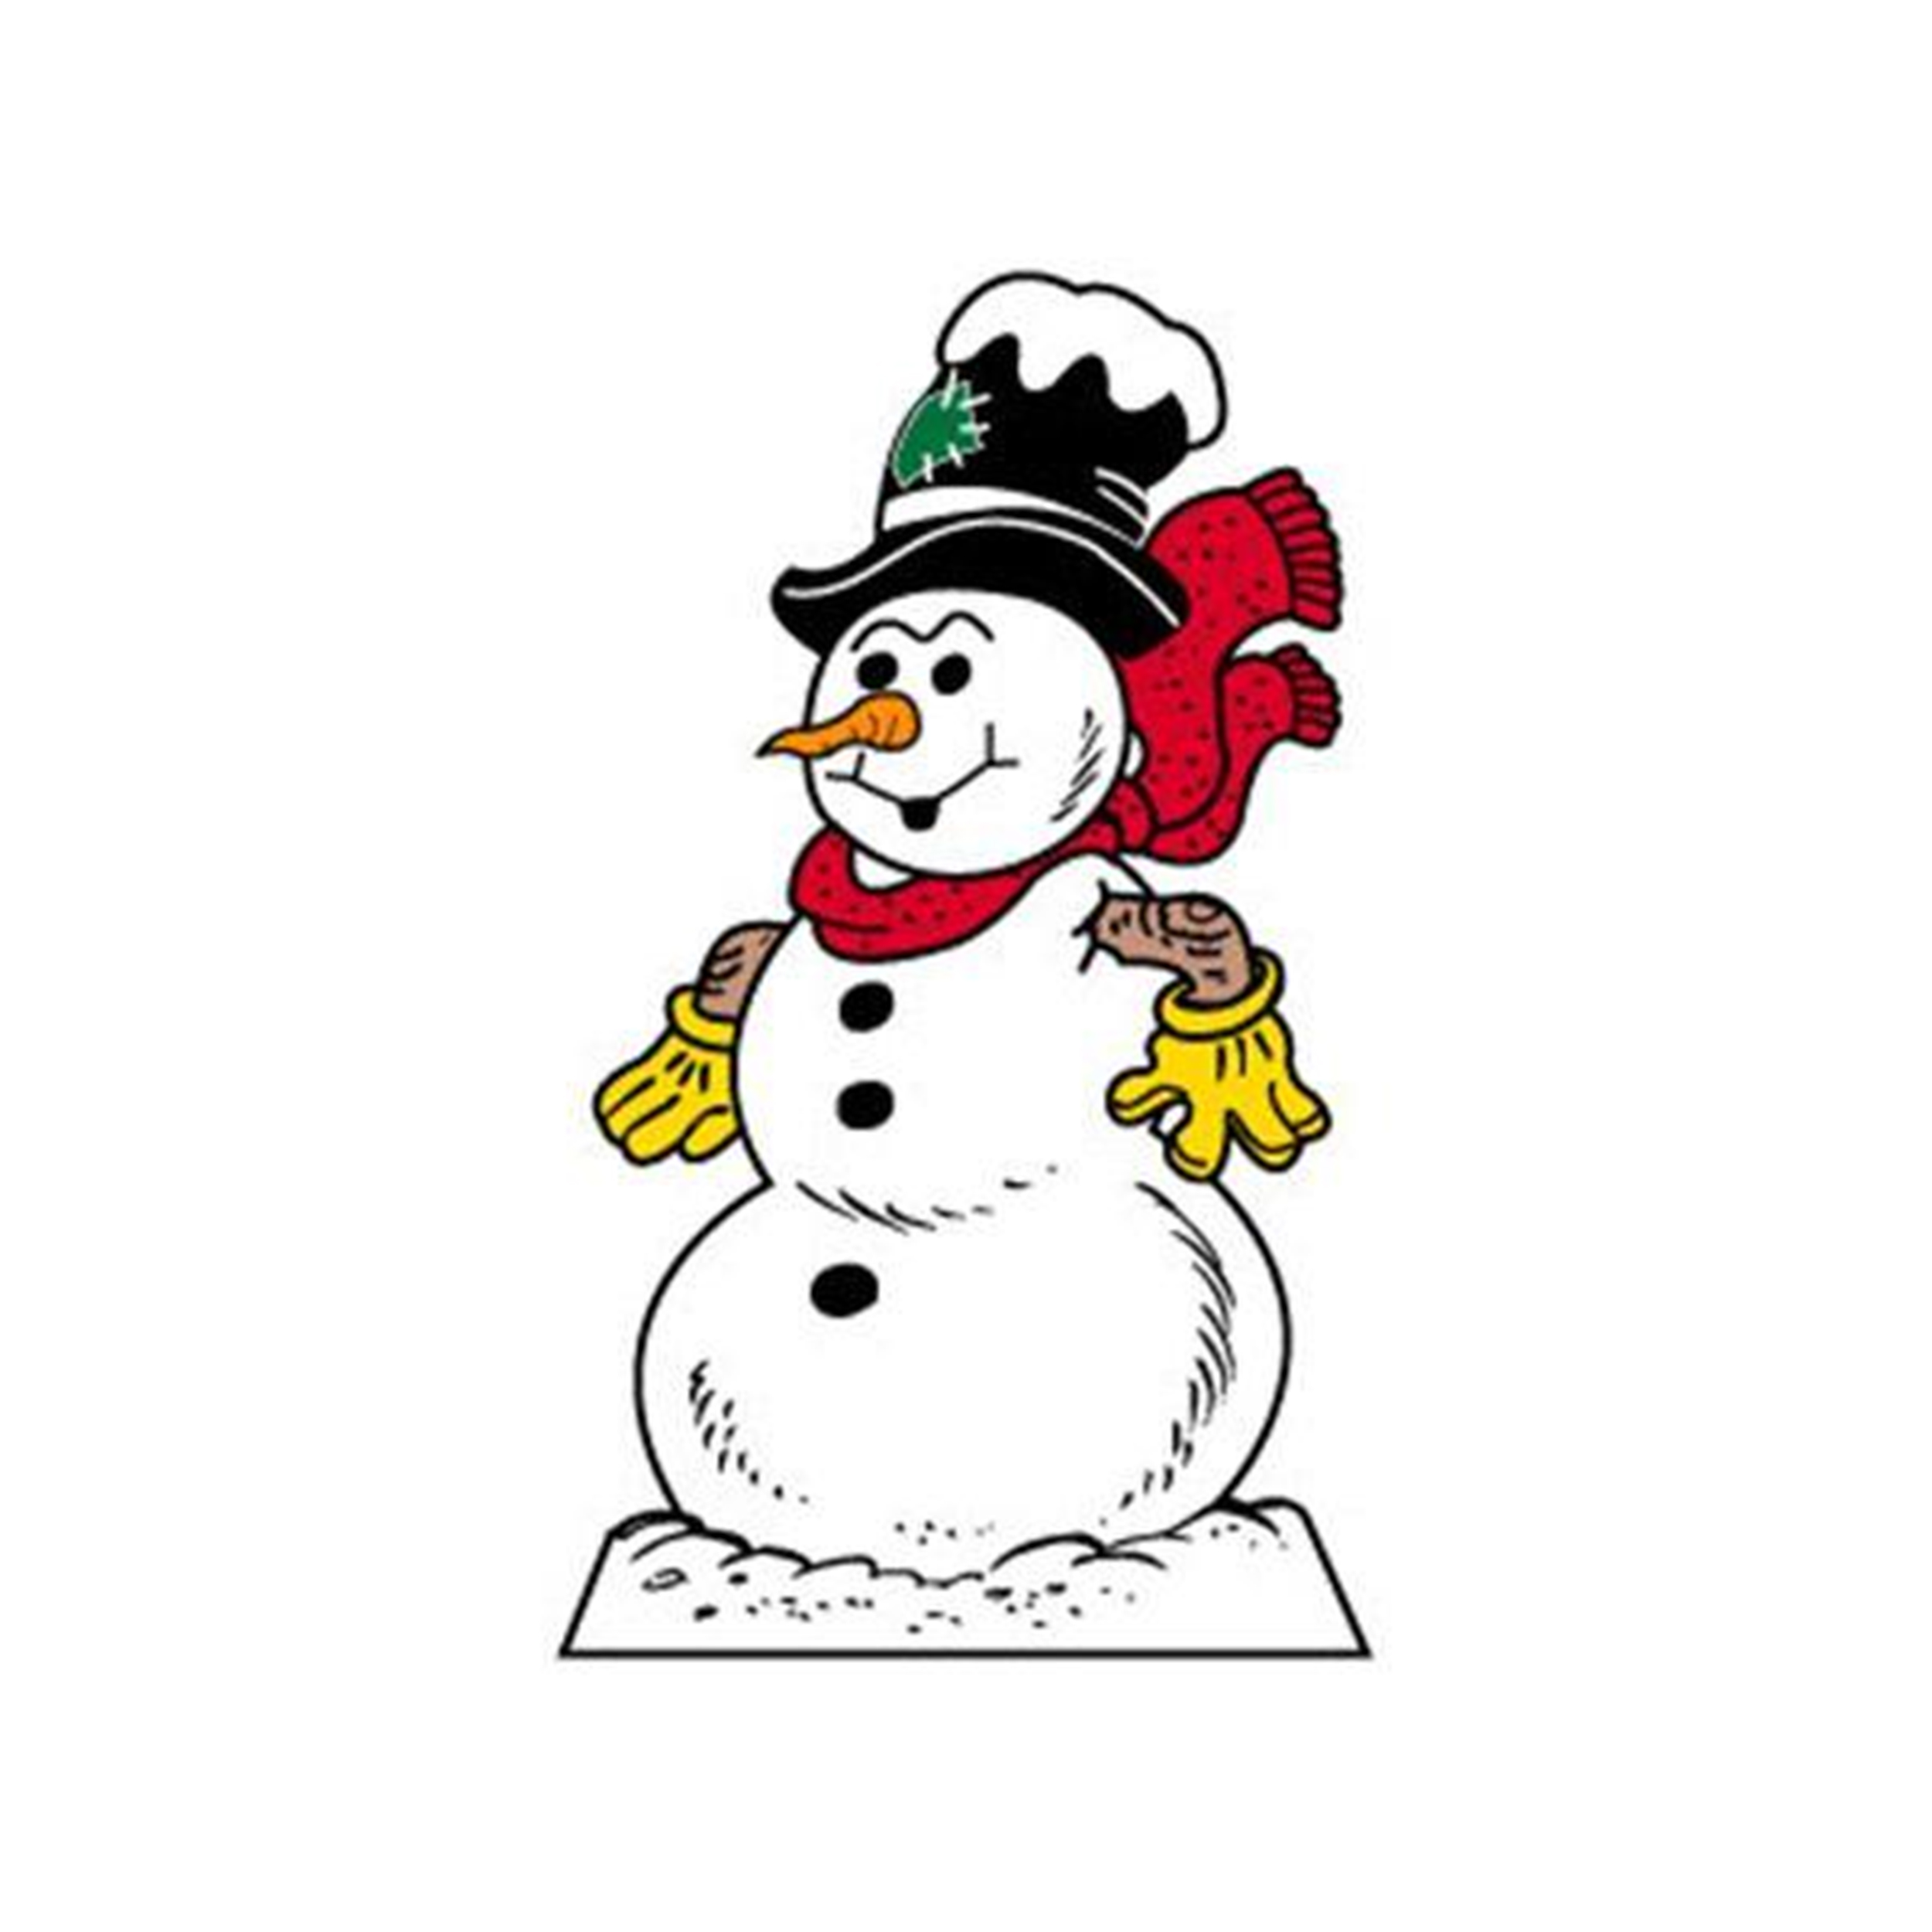 Woodworking Project Paper Plan to Build Large Snowman